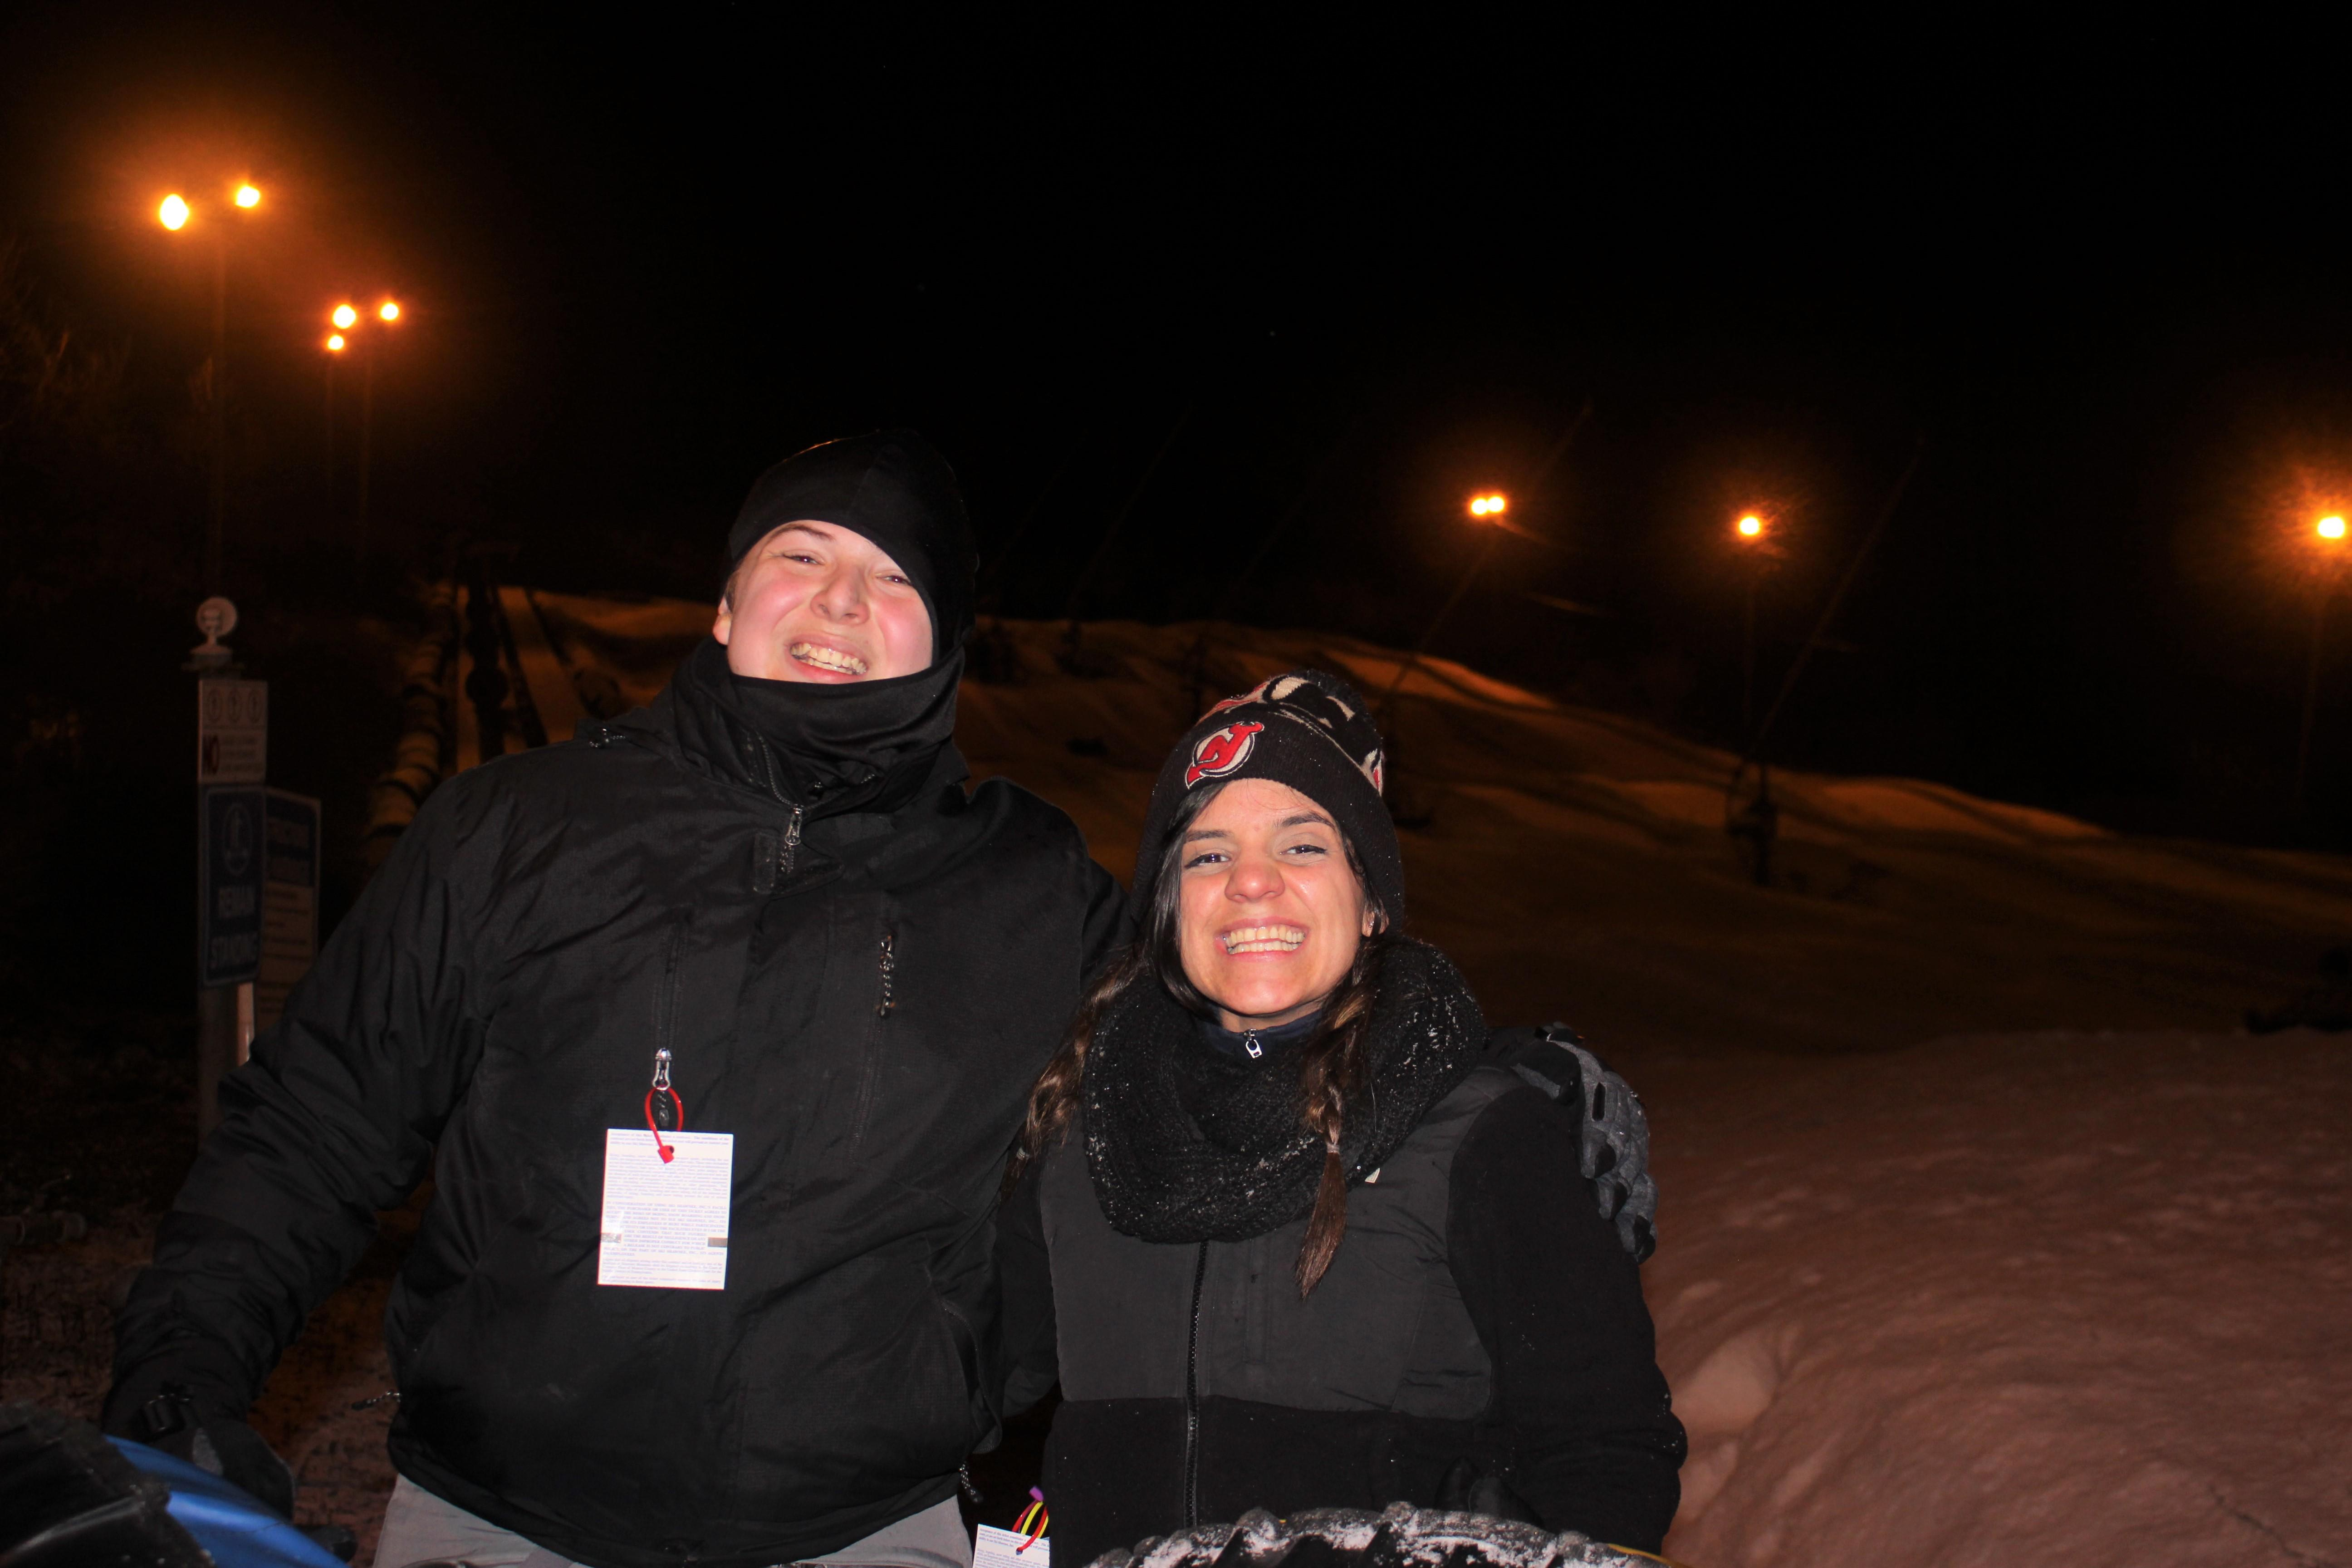 Student and teacher on snow tubing trip